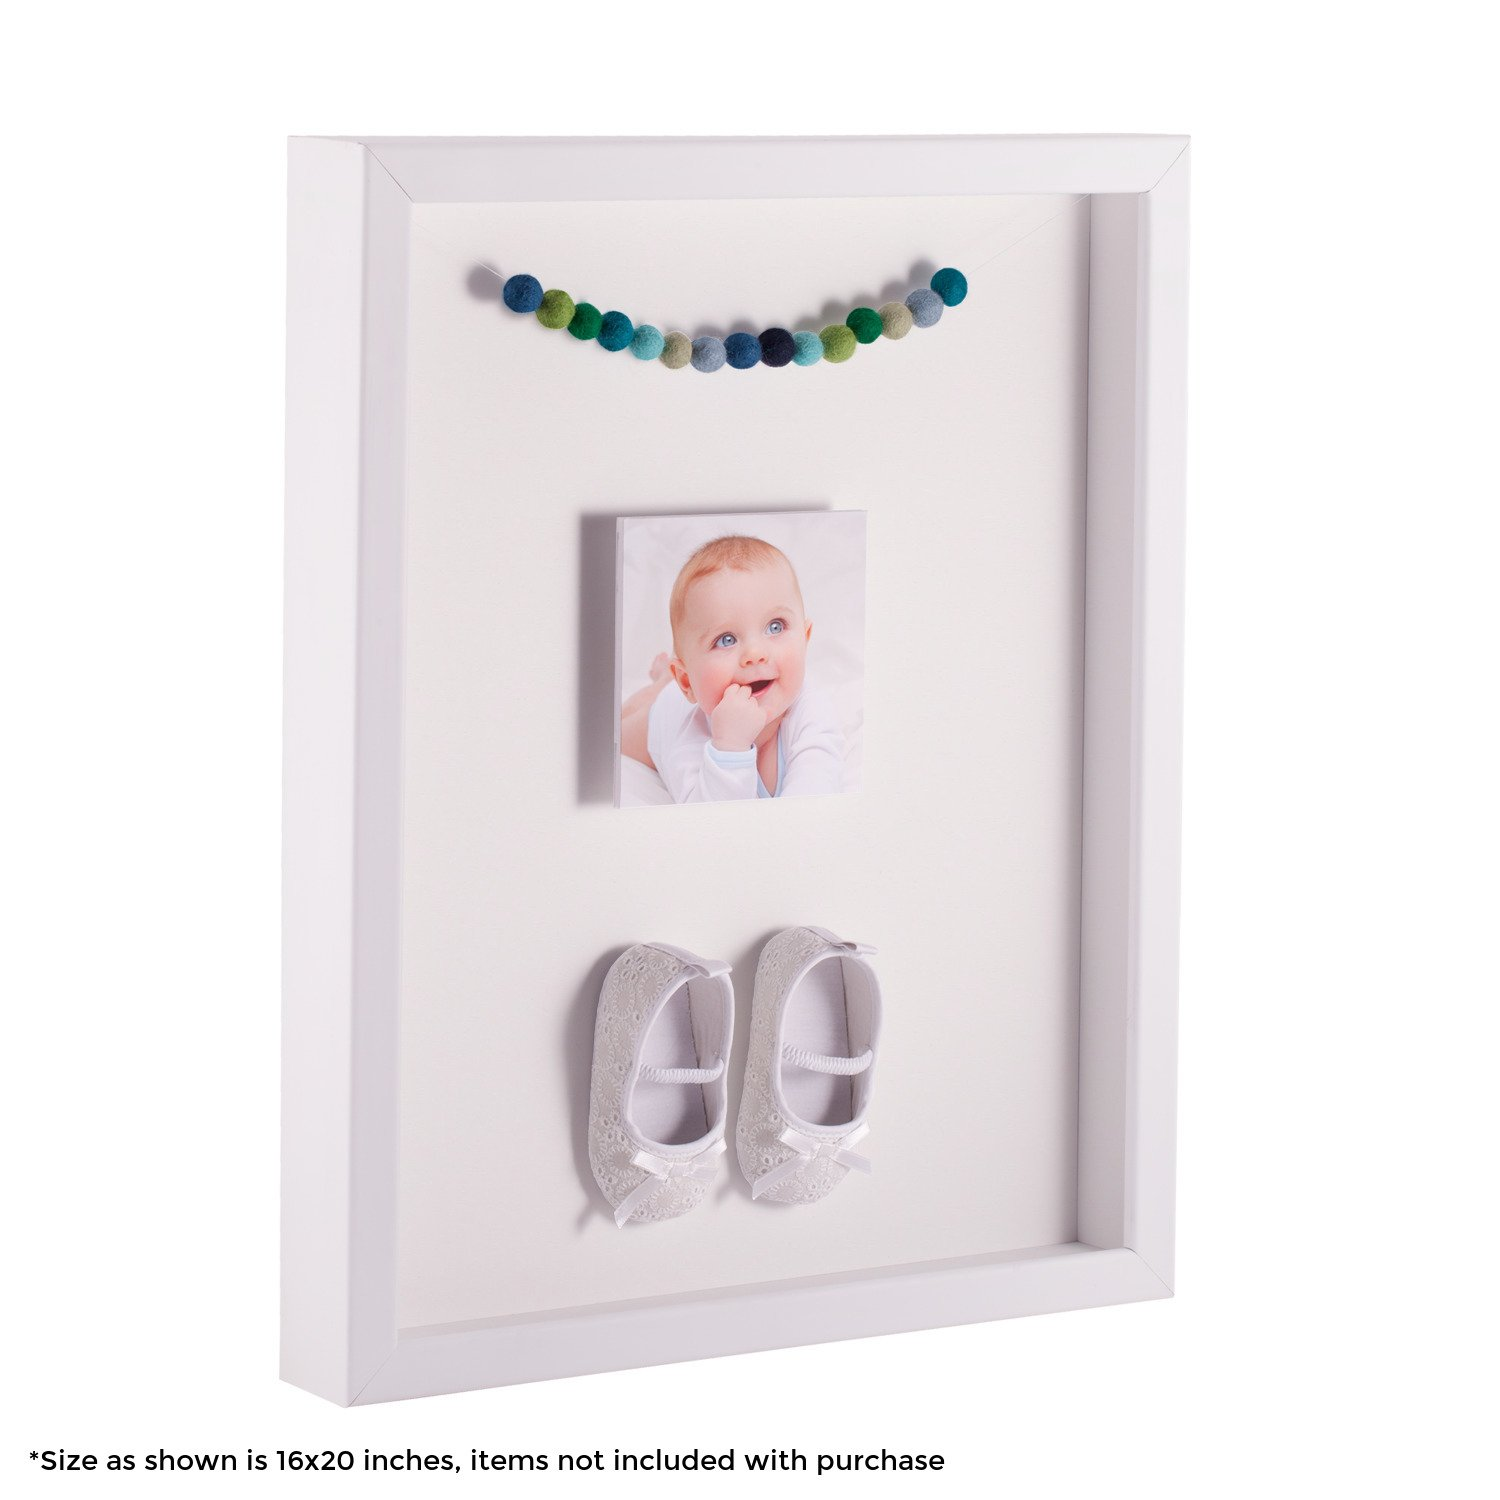 ArtToFrames 24 x 36 Inch Shadow Box Picture Frame, with a Satin White 1'' Shadowbox frame and Porcelain Mat